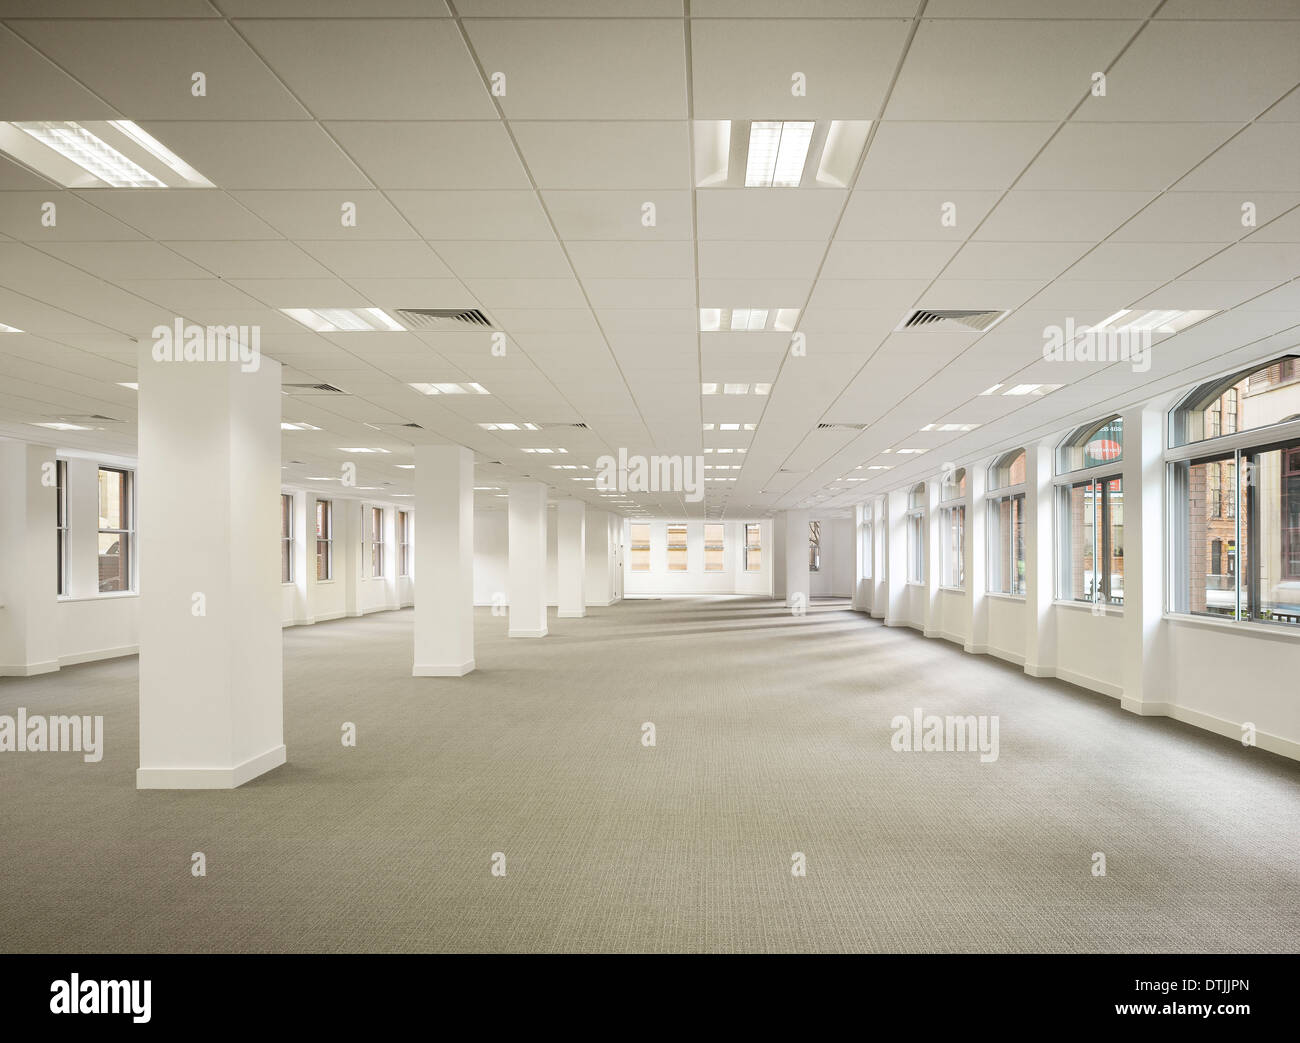 Interior Of Empty Office Space In Commercial Building, King Street, Leeds,  Yorkshire.